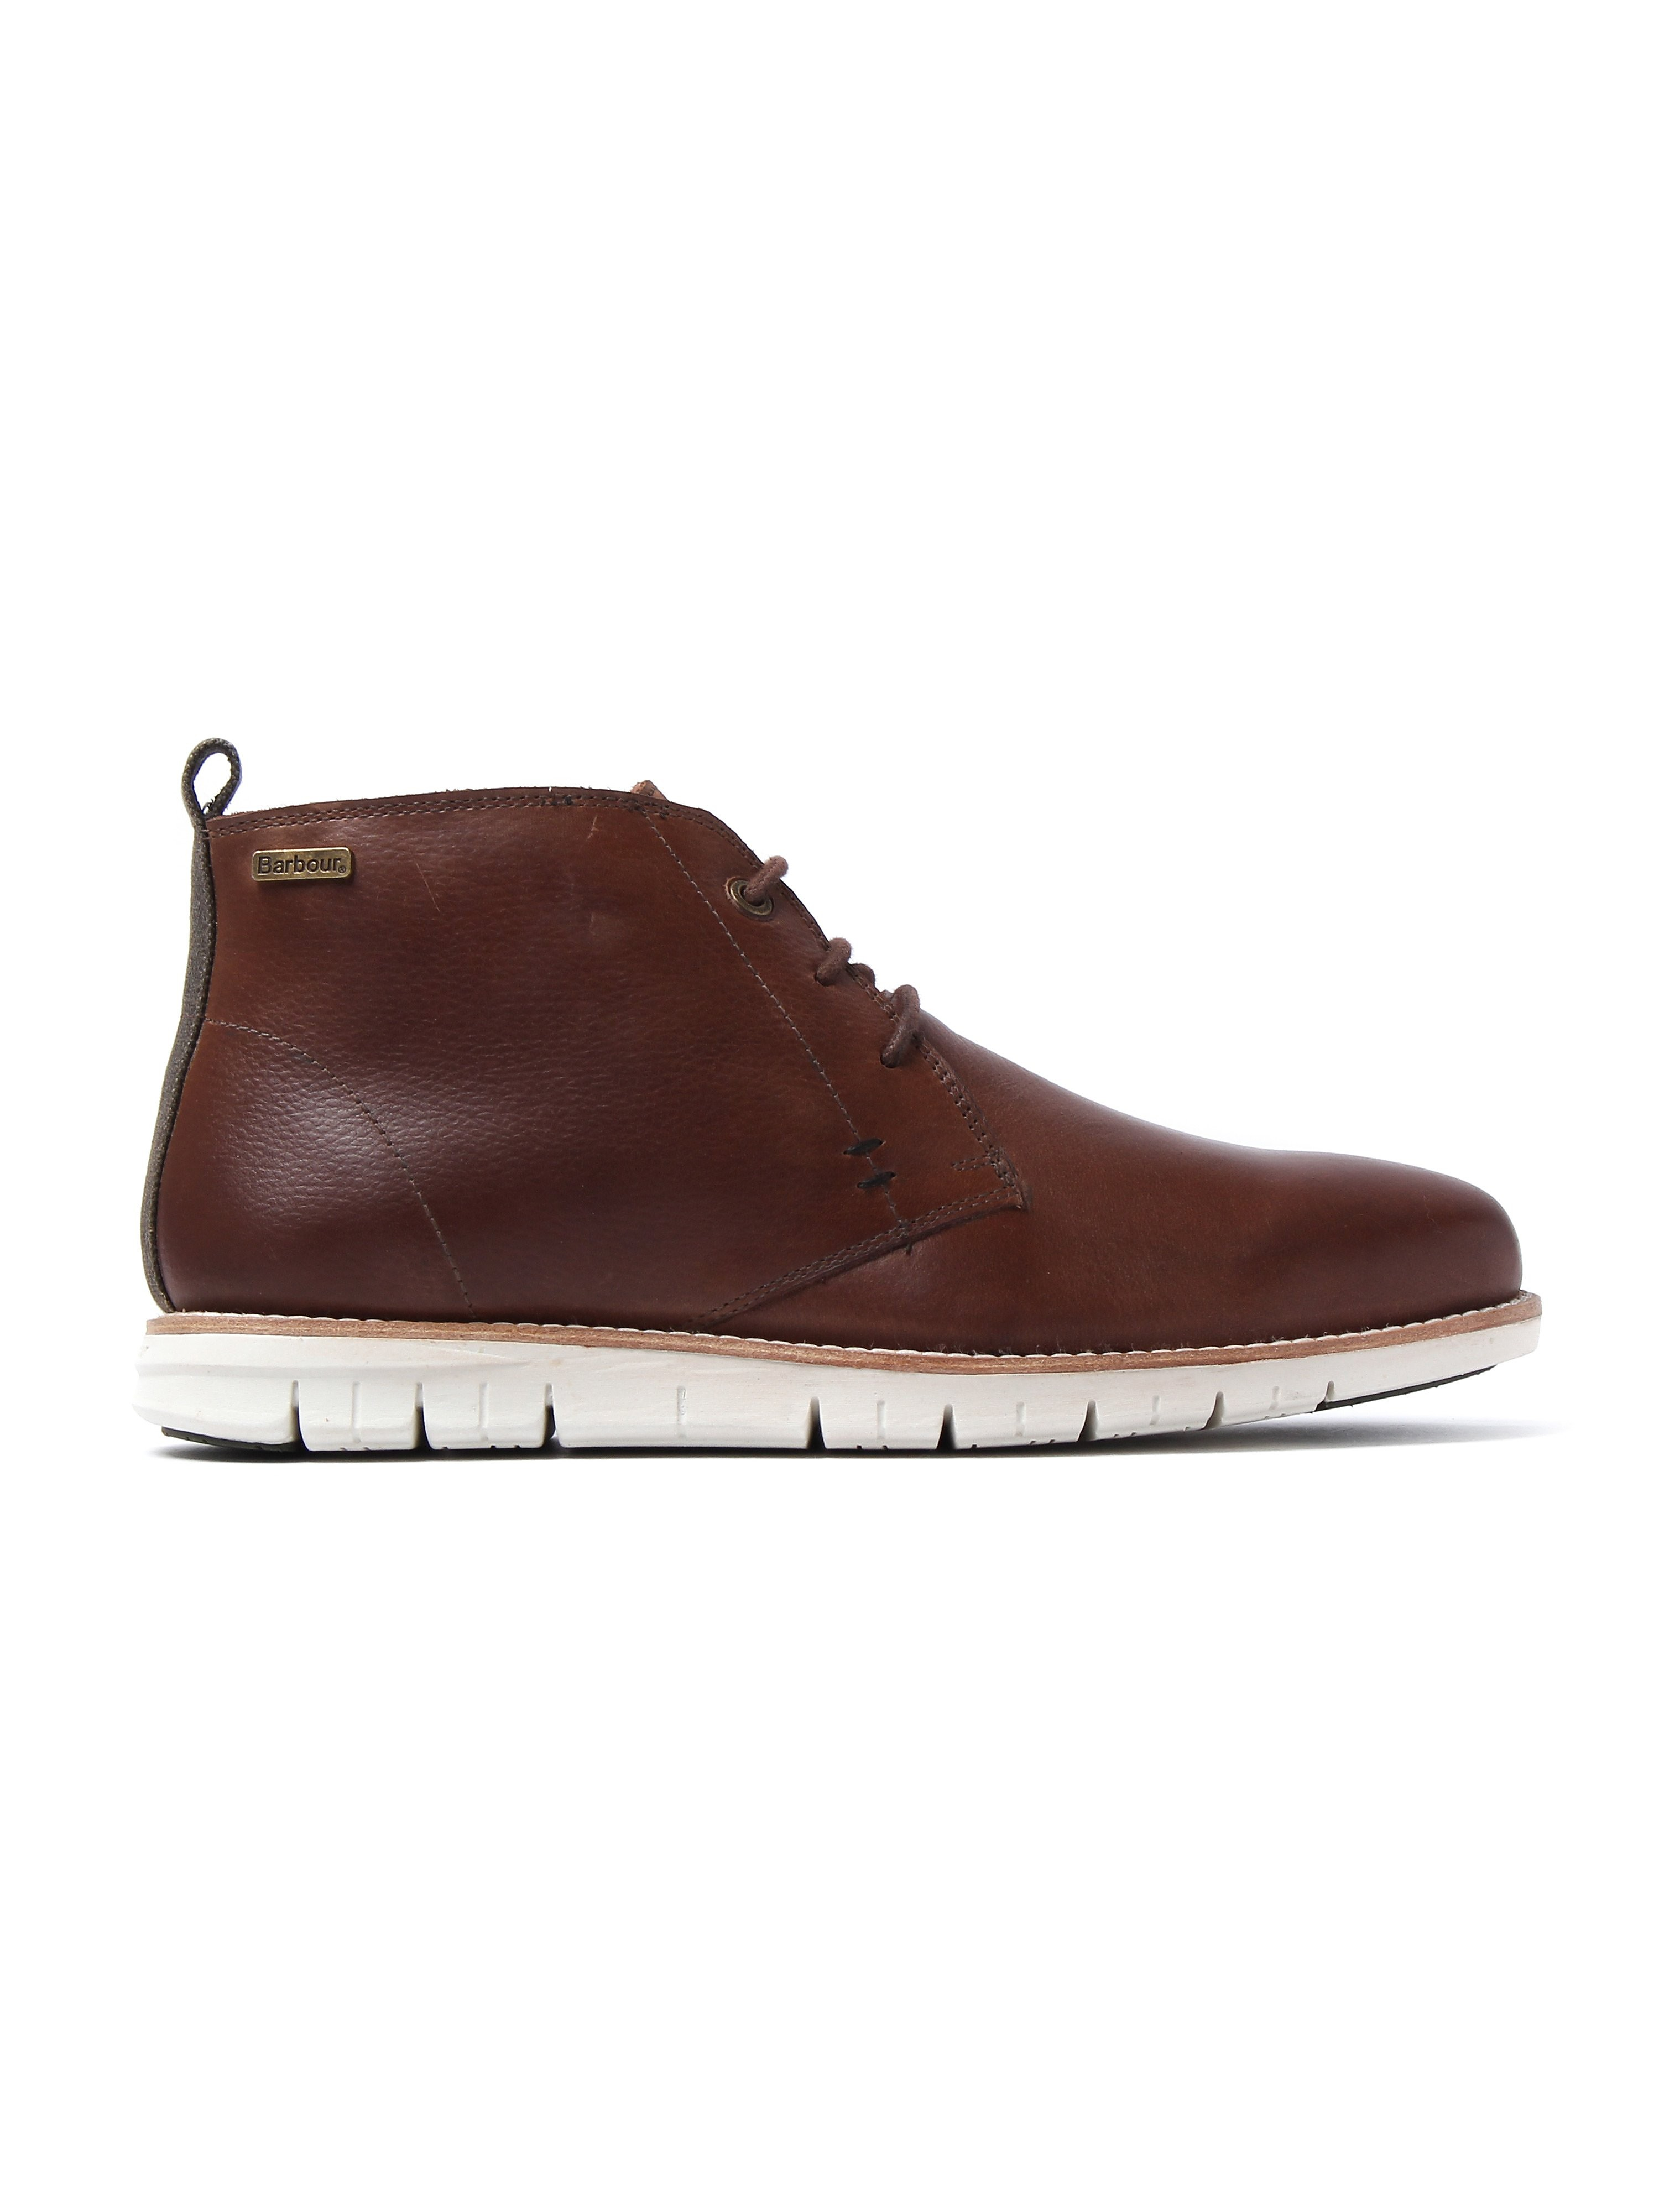 Barbour Men's Burghley Chukka Boots - Wine Leather